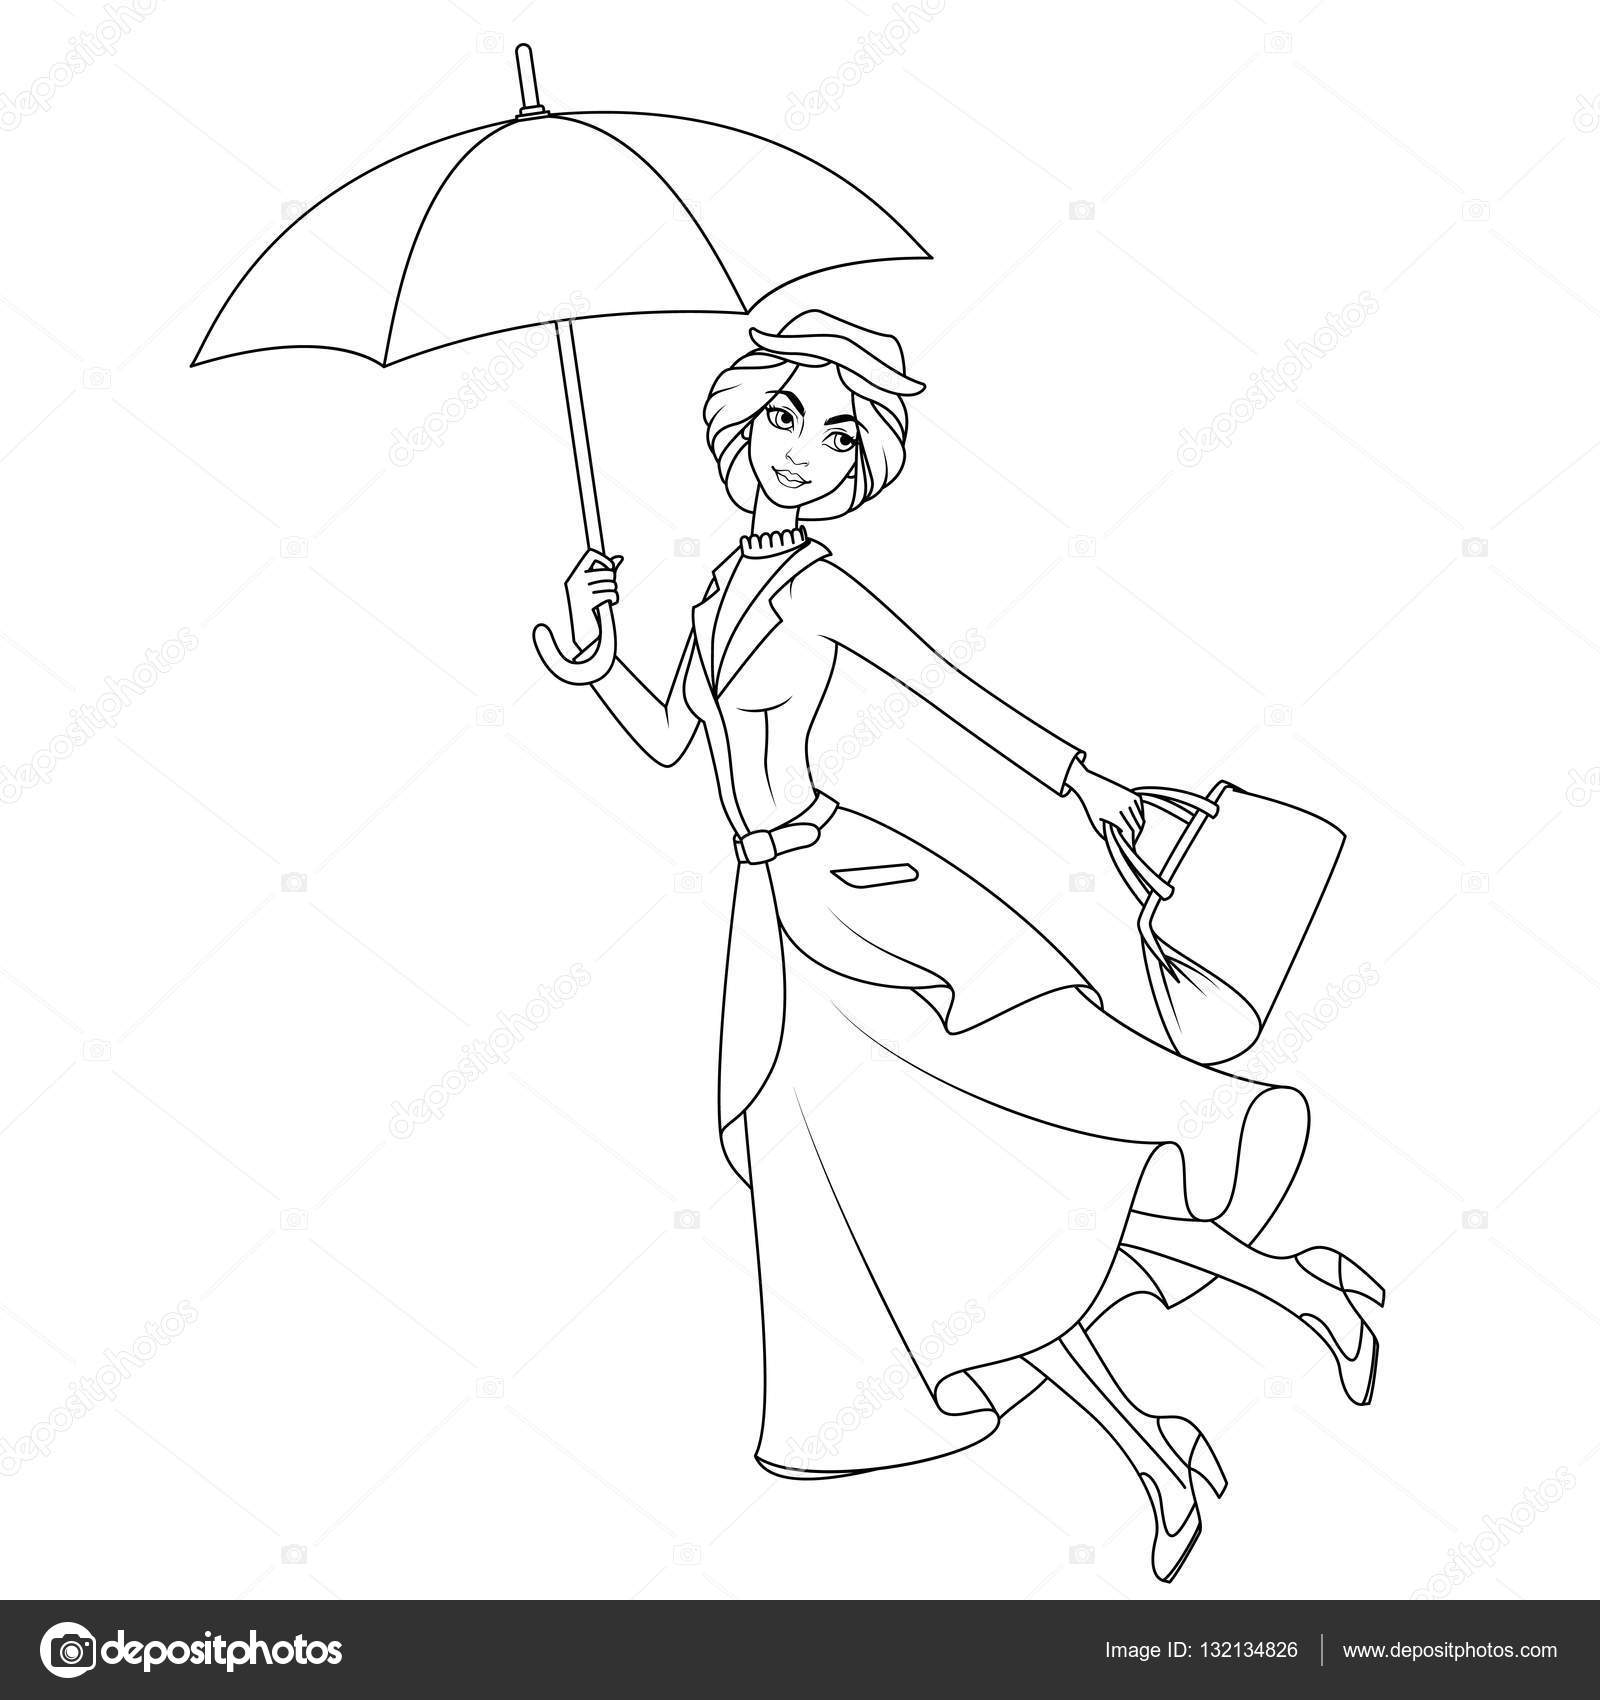 Coloring book: Mary Poppins a novel character flying on umbrella ...